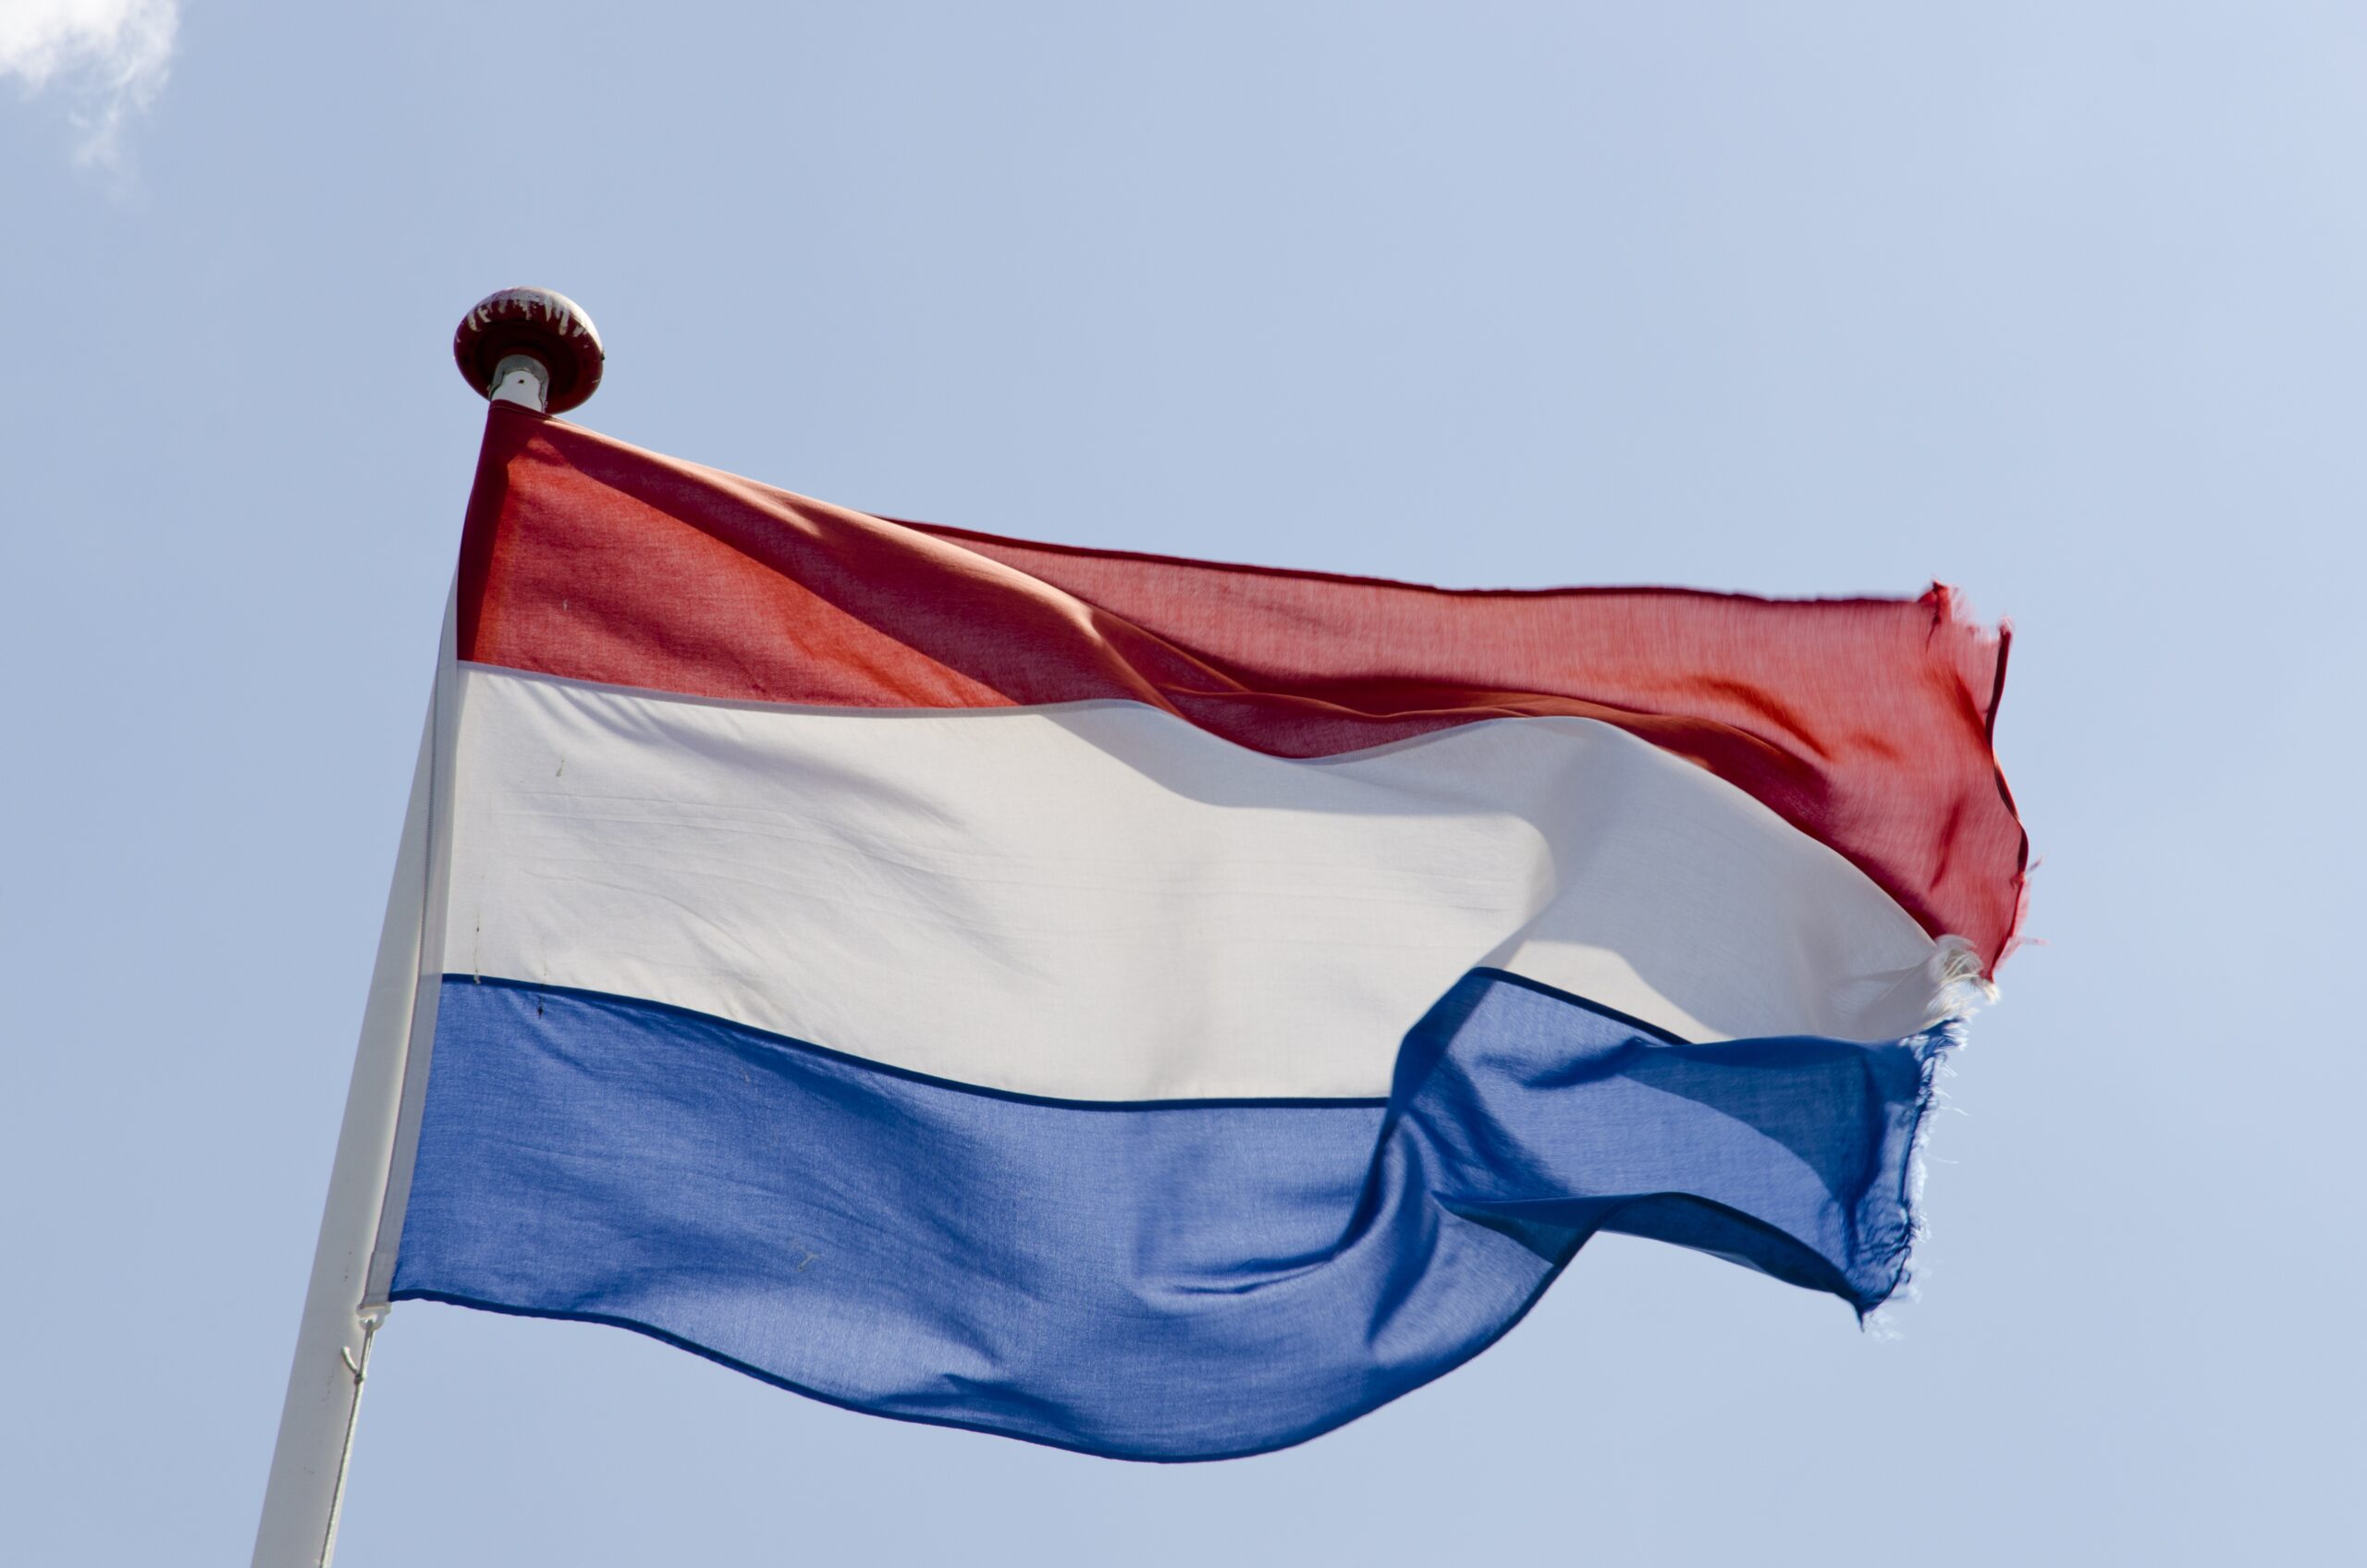 General elections in The Netherlands